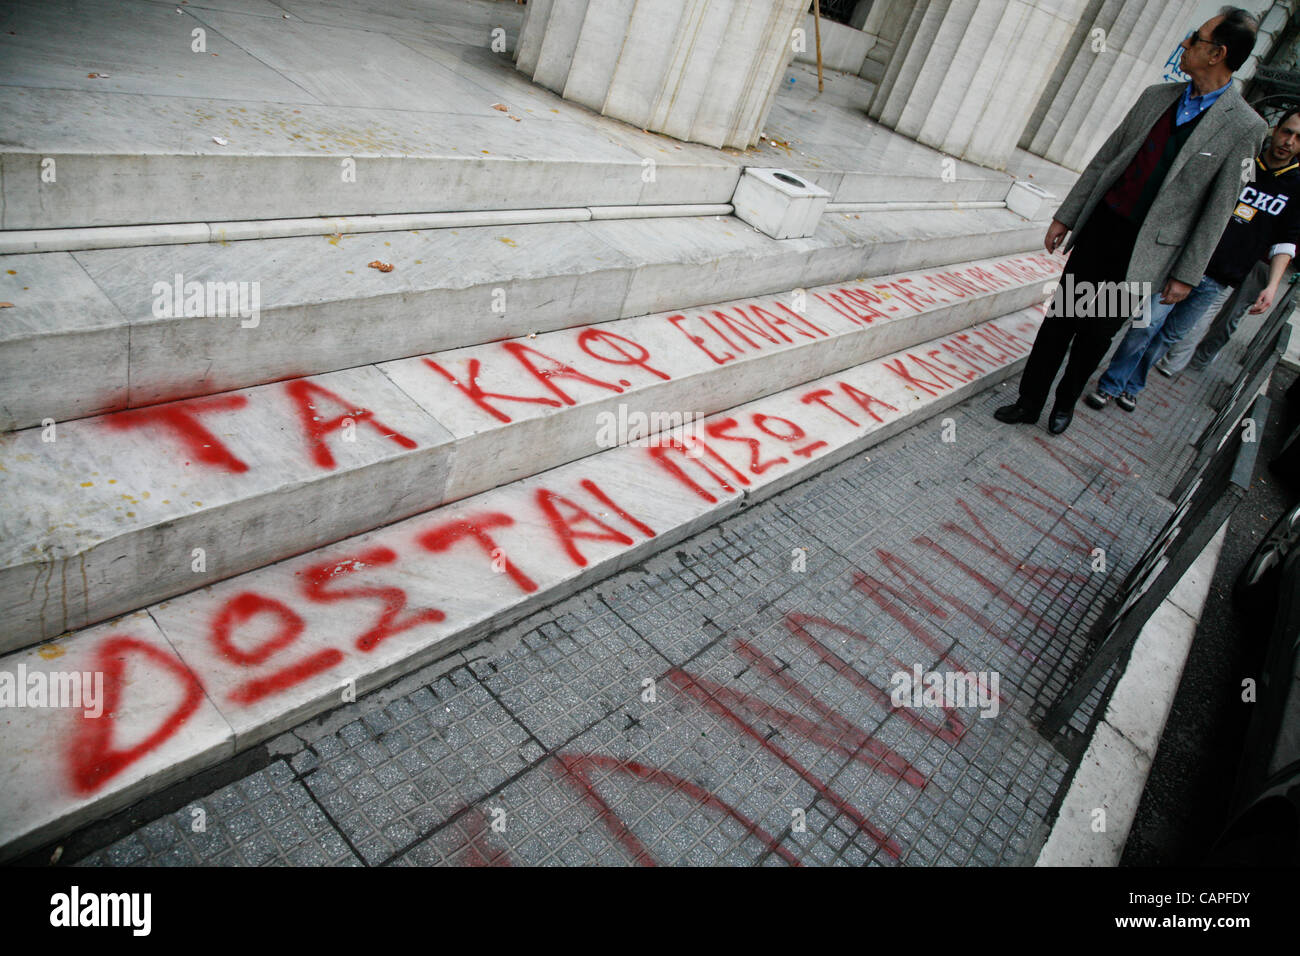 April 6, 2012. Thessaloniki, Greece. Stevedores protested about the reduction of 70% of their reserves at the Bank - Stock Image